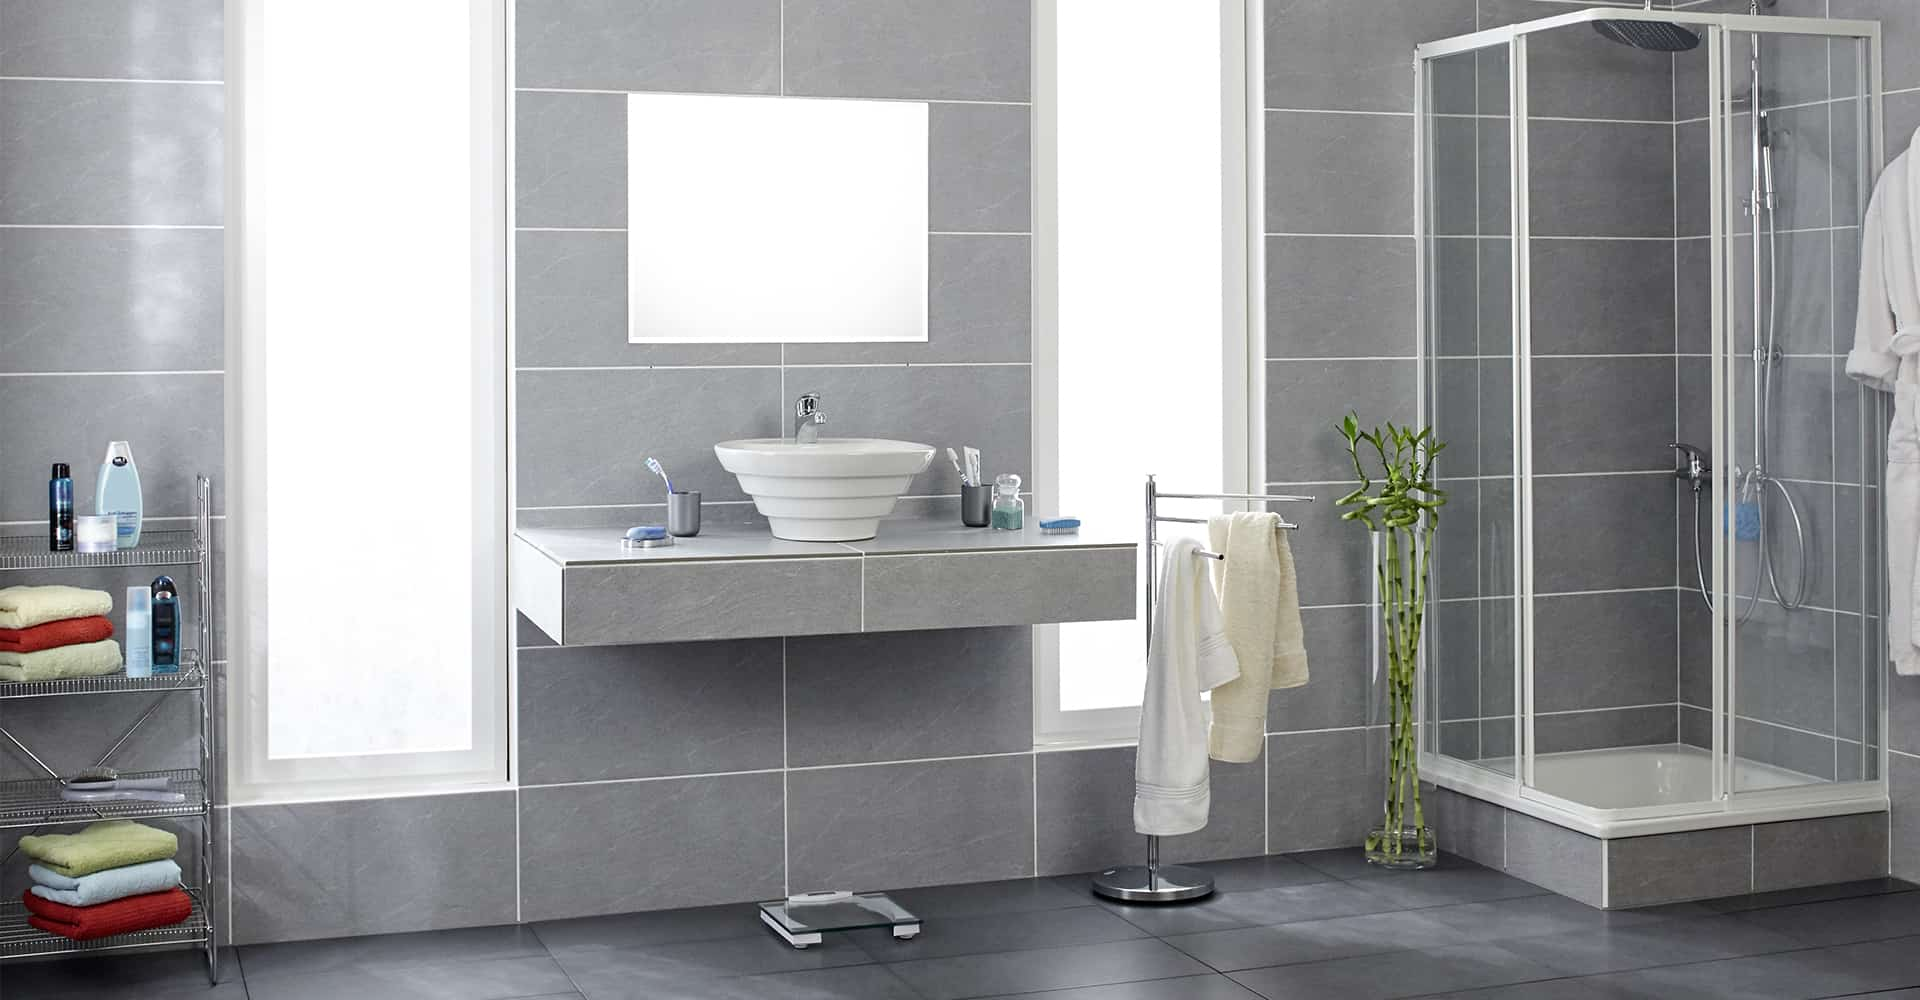 How to Clean Bathroom Tiles - spruceup.co.uk